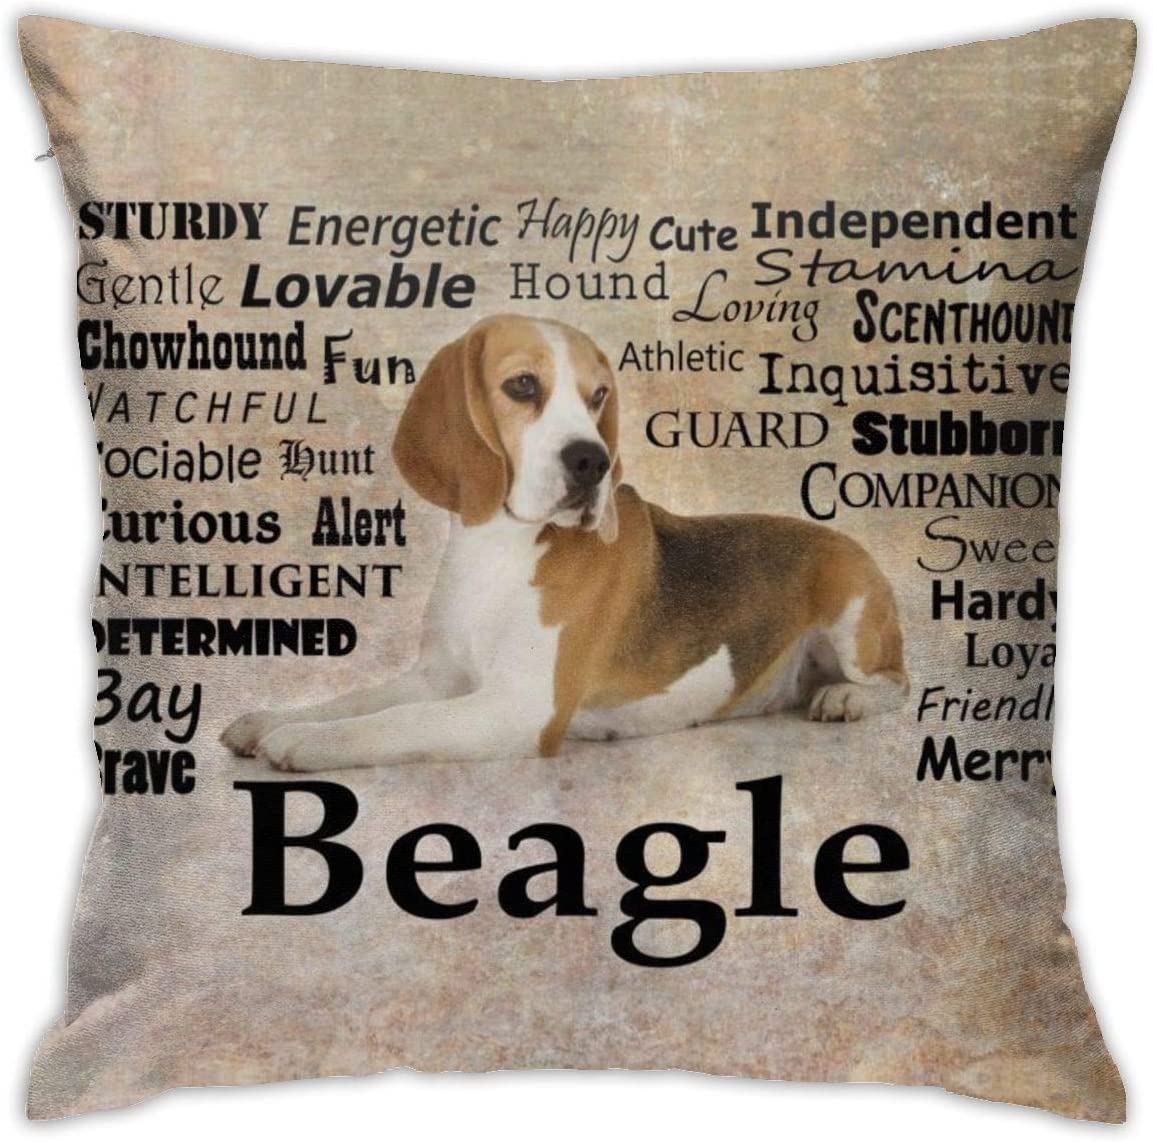 Yaateeh Beagle Dog Throw Pillow Covers Decorative 18x18 Inch Pillowcase Square Cushion Cases for Home Sofa Bedroom Livingroom